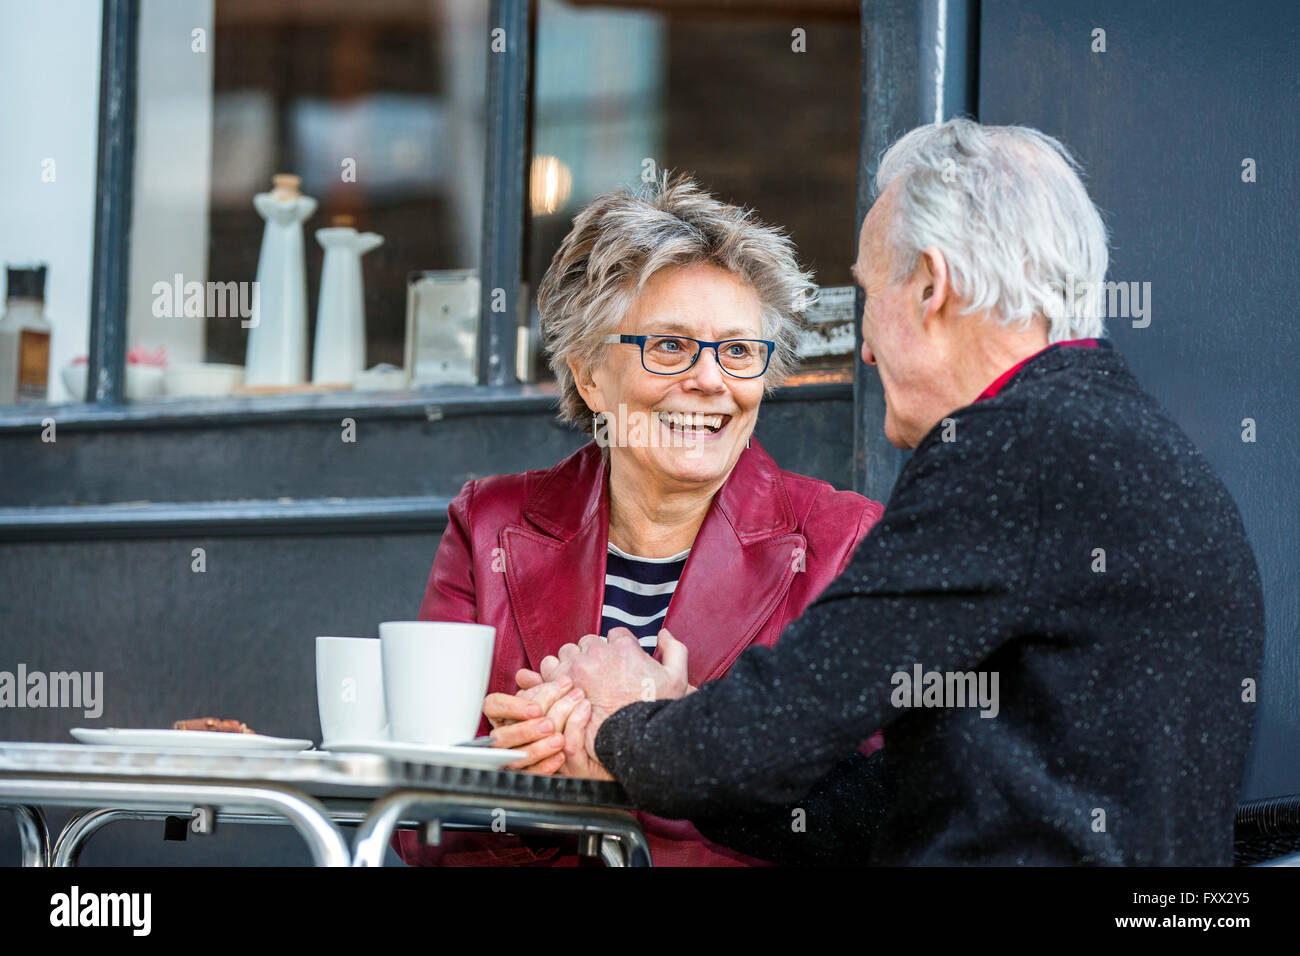 Romantic senior couple holding hands at sidewalk cafe - Stock Image